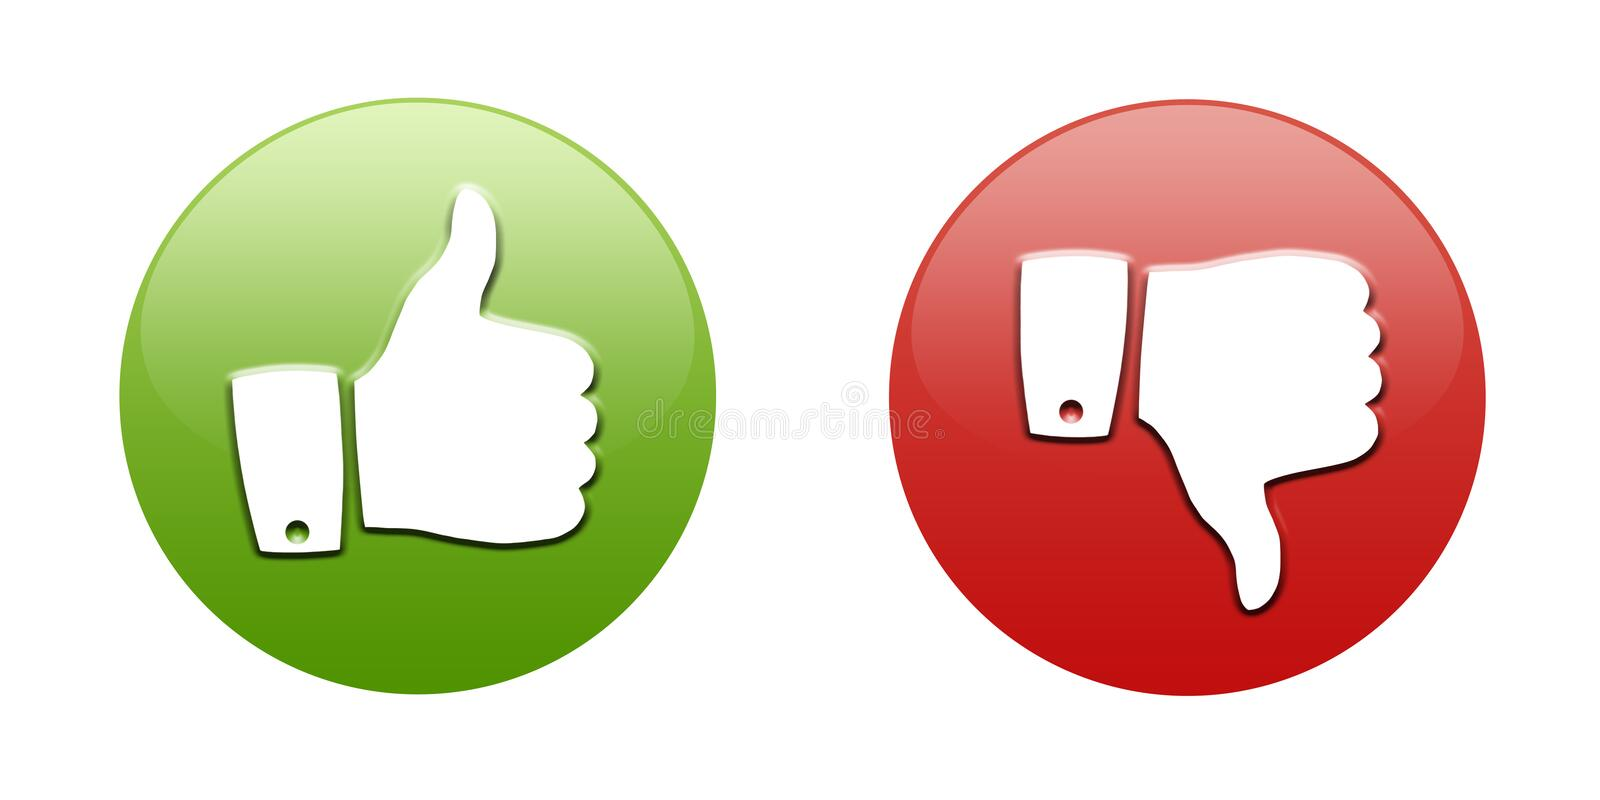 Thumbs up and down buttons vector illustration